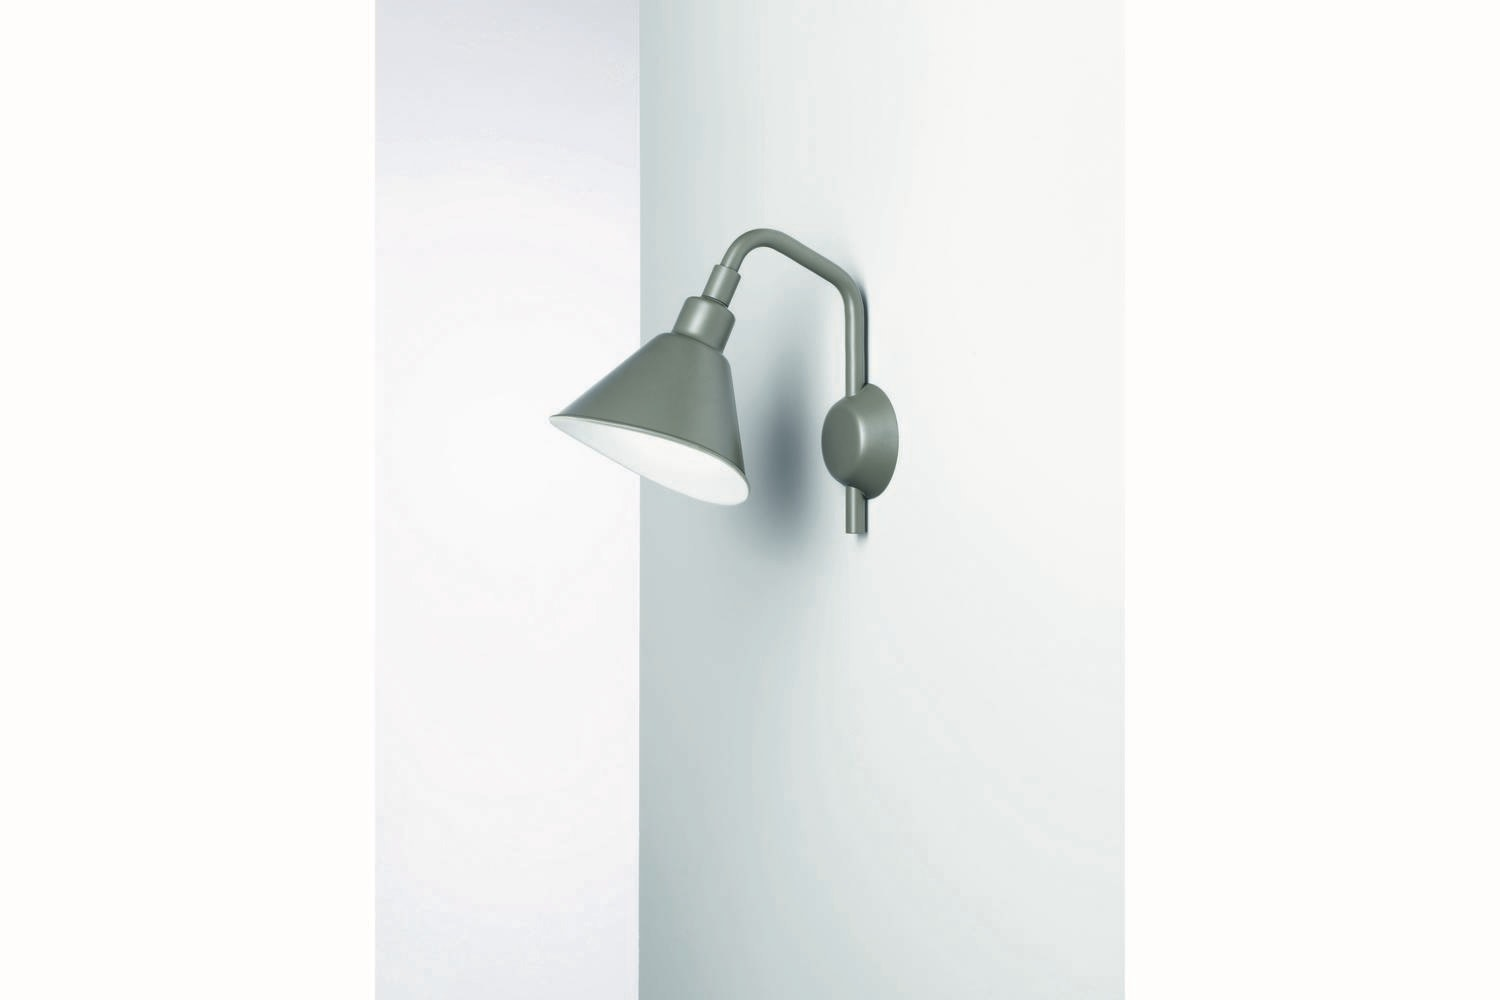 Smash Wall Lamp by Successful Living from DIESEL for Foscarini